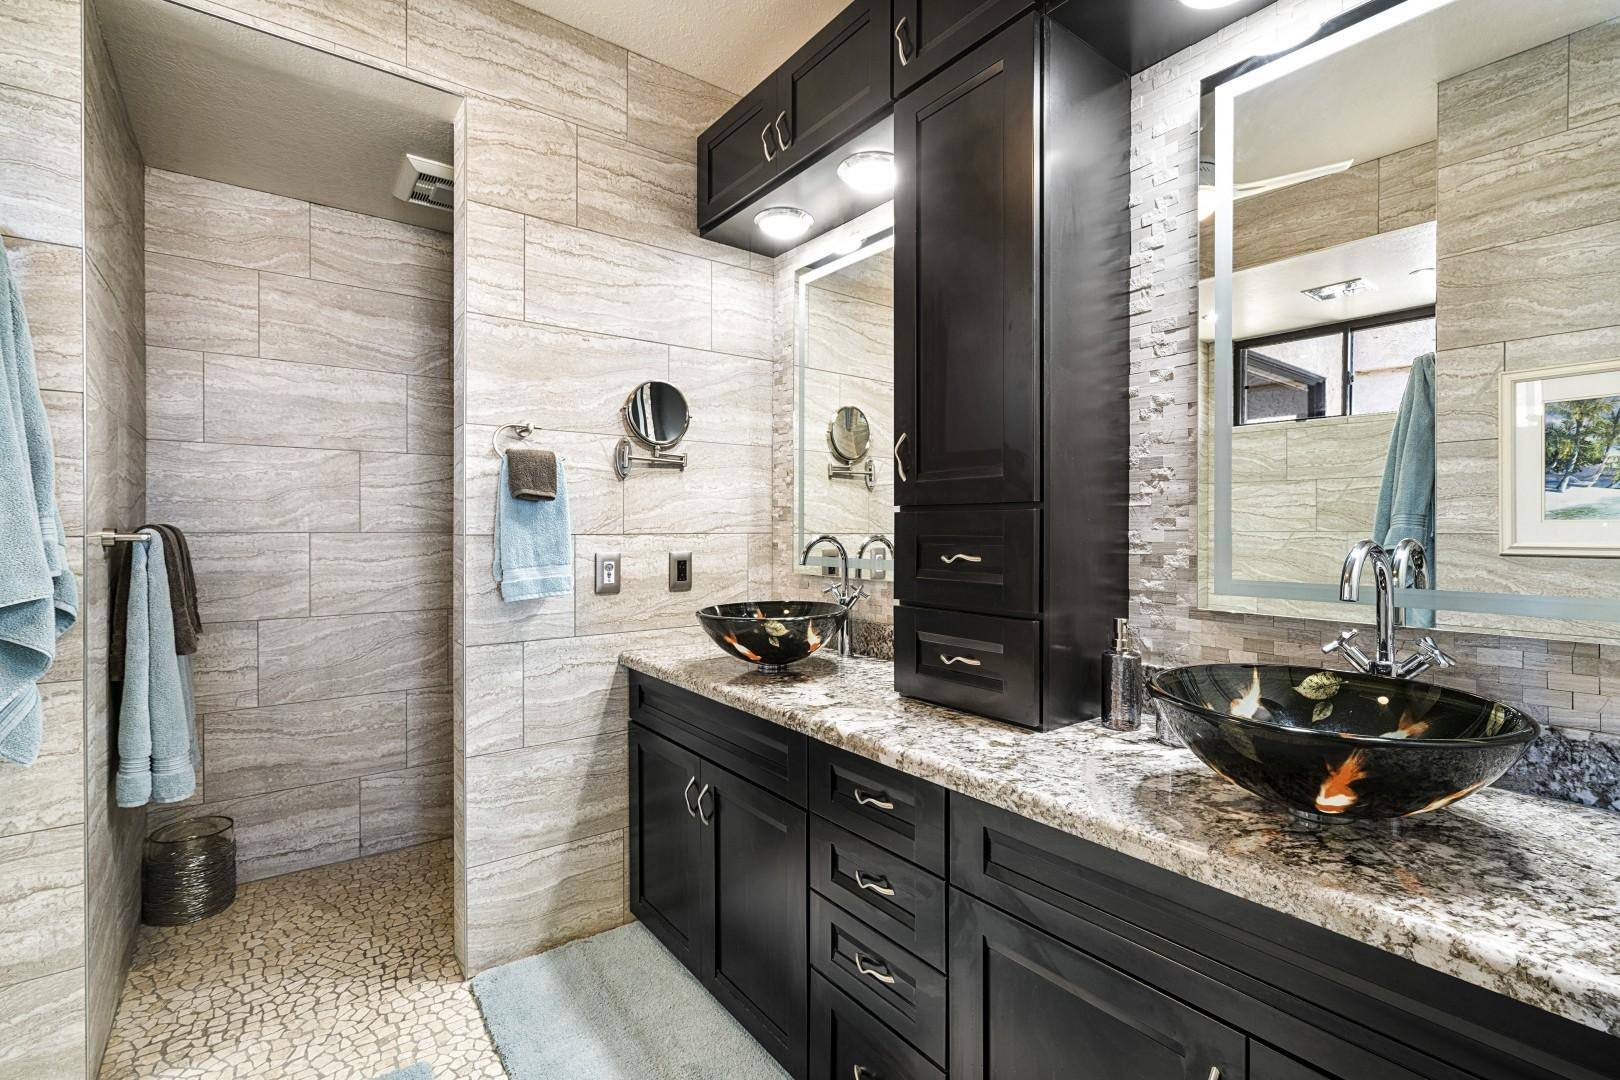 Gorgeous Master bathroom fit for a King or Queen!